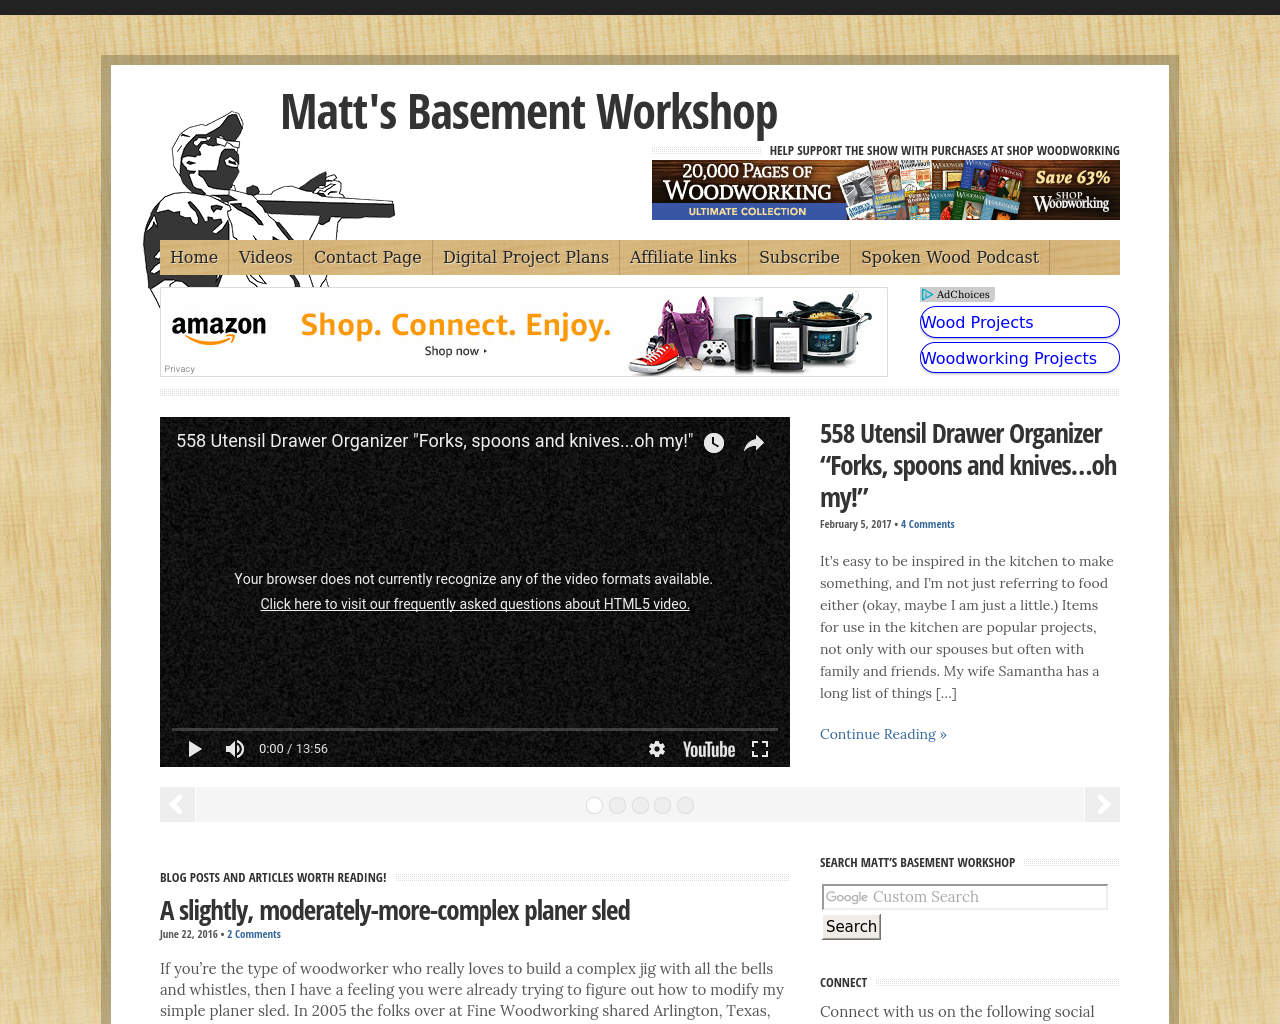 Matt's-Basement-Workshop-Advertising-Reviews-Pricing